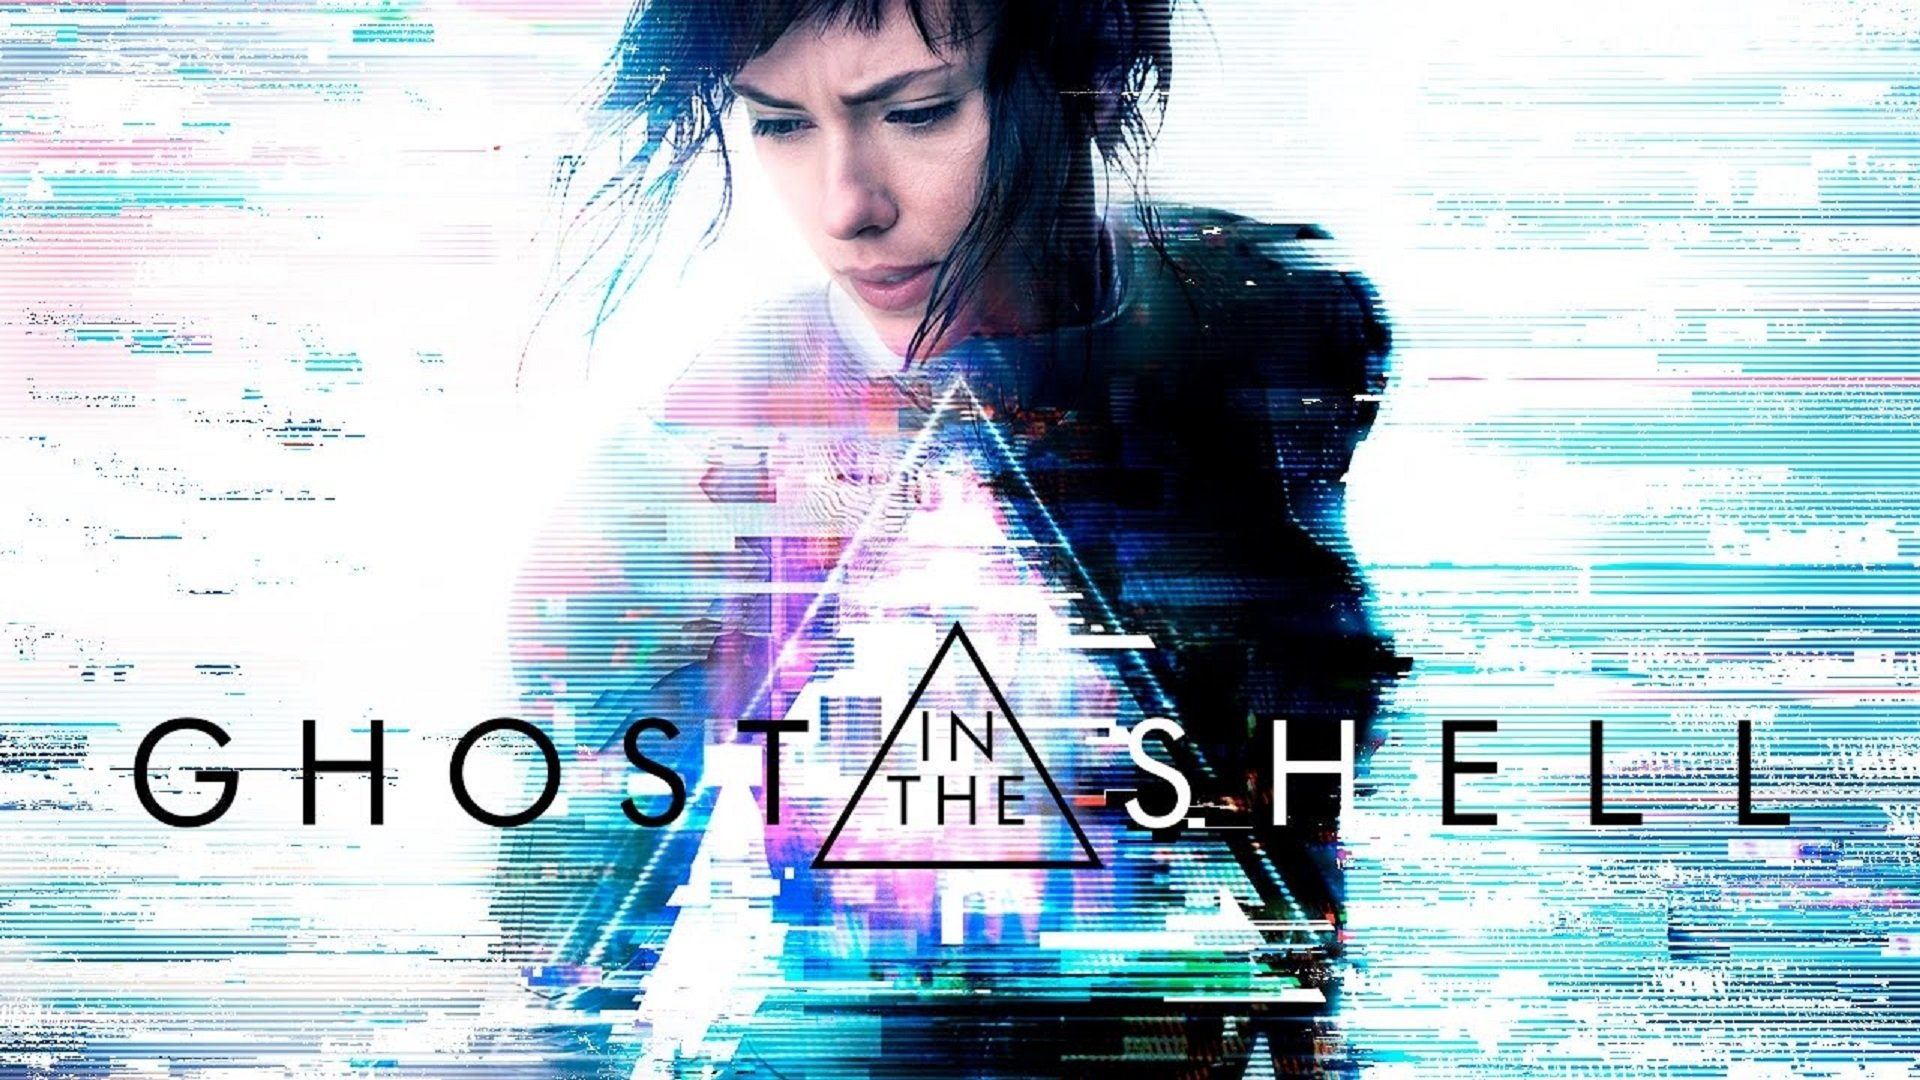 13 Ghost In The Shell 2017 Hd Wallpapers Background Images